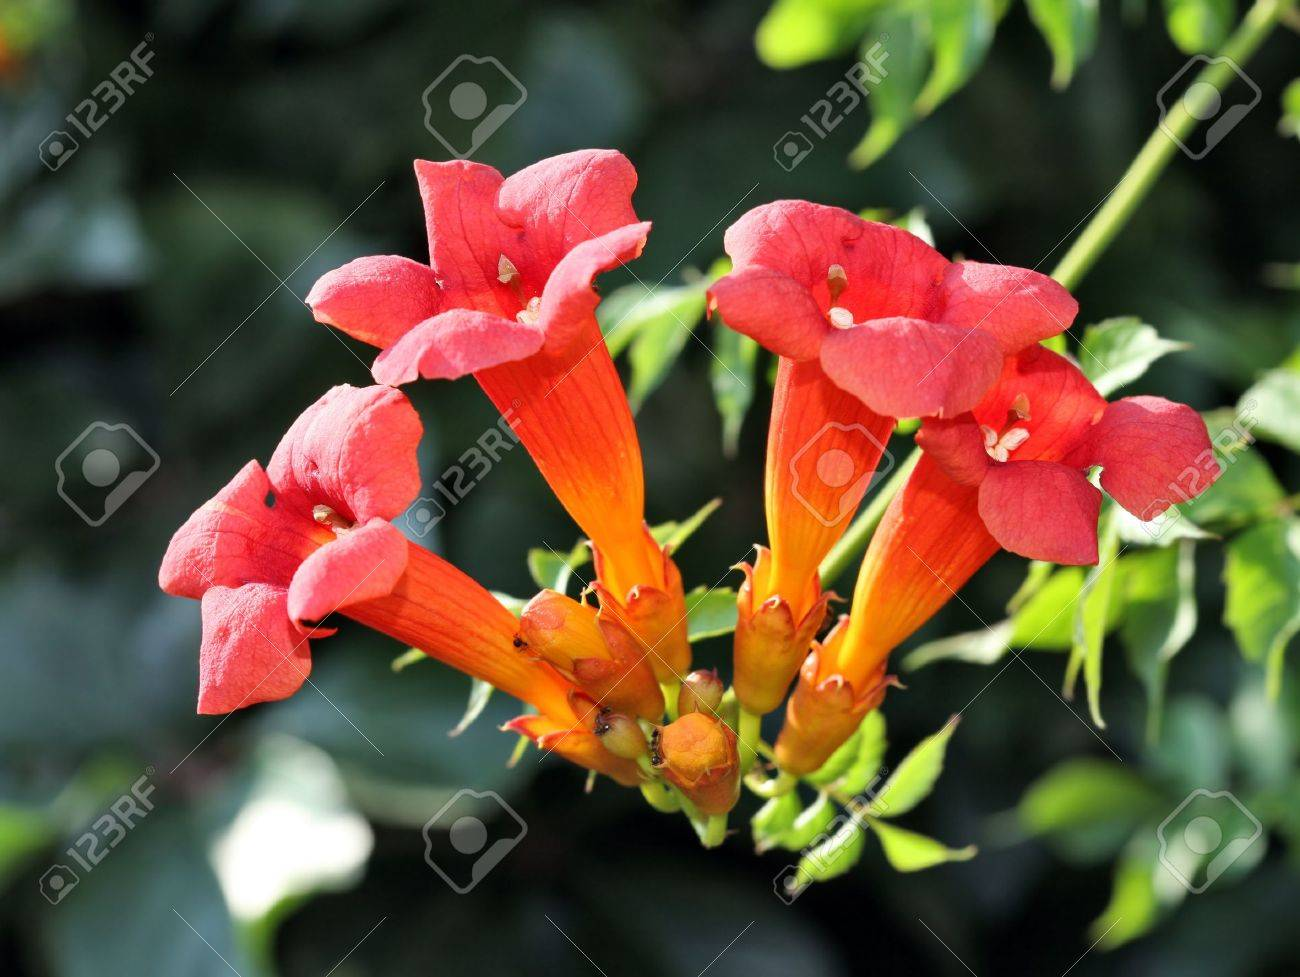 Trumpet Vine Flowers In Blossom Stock Photo Picture And Royalty